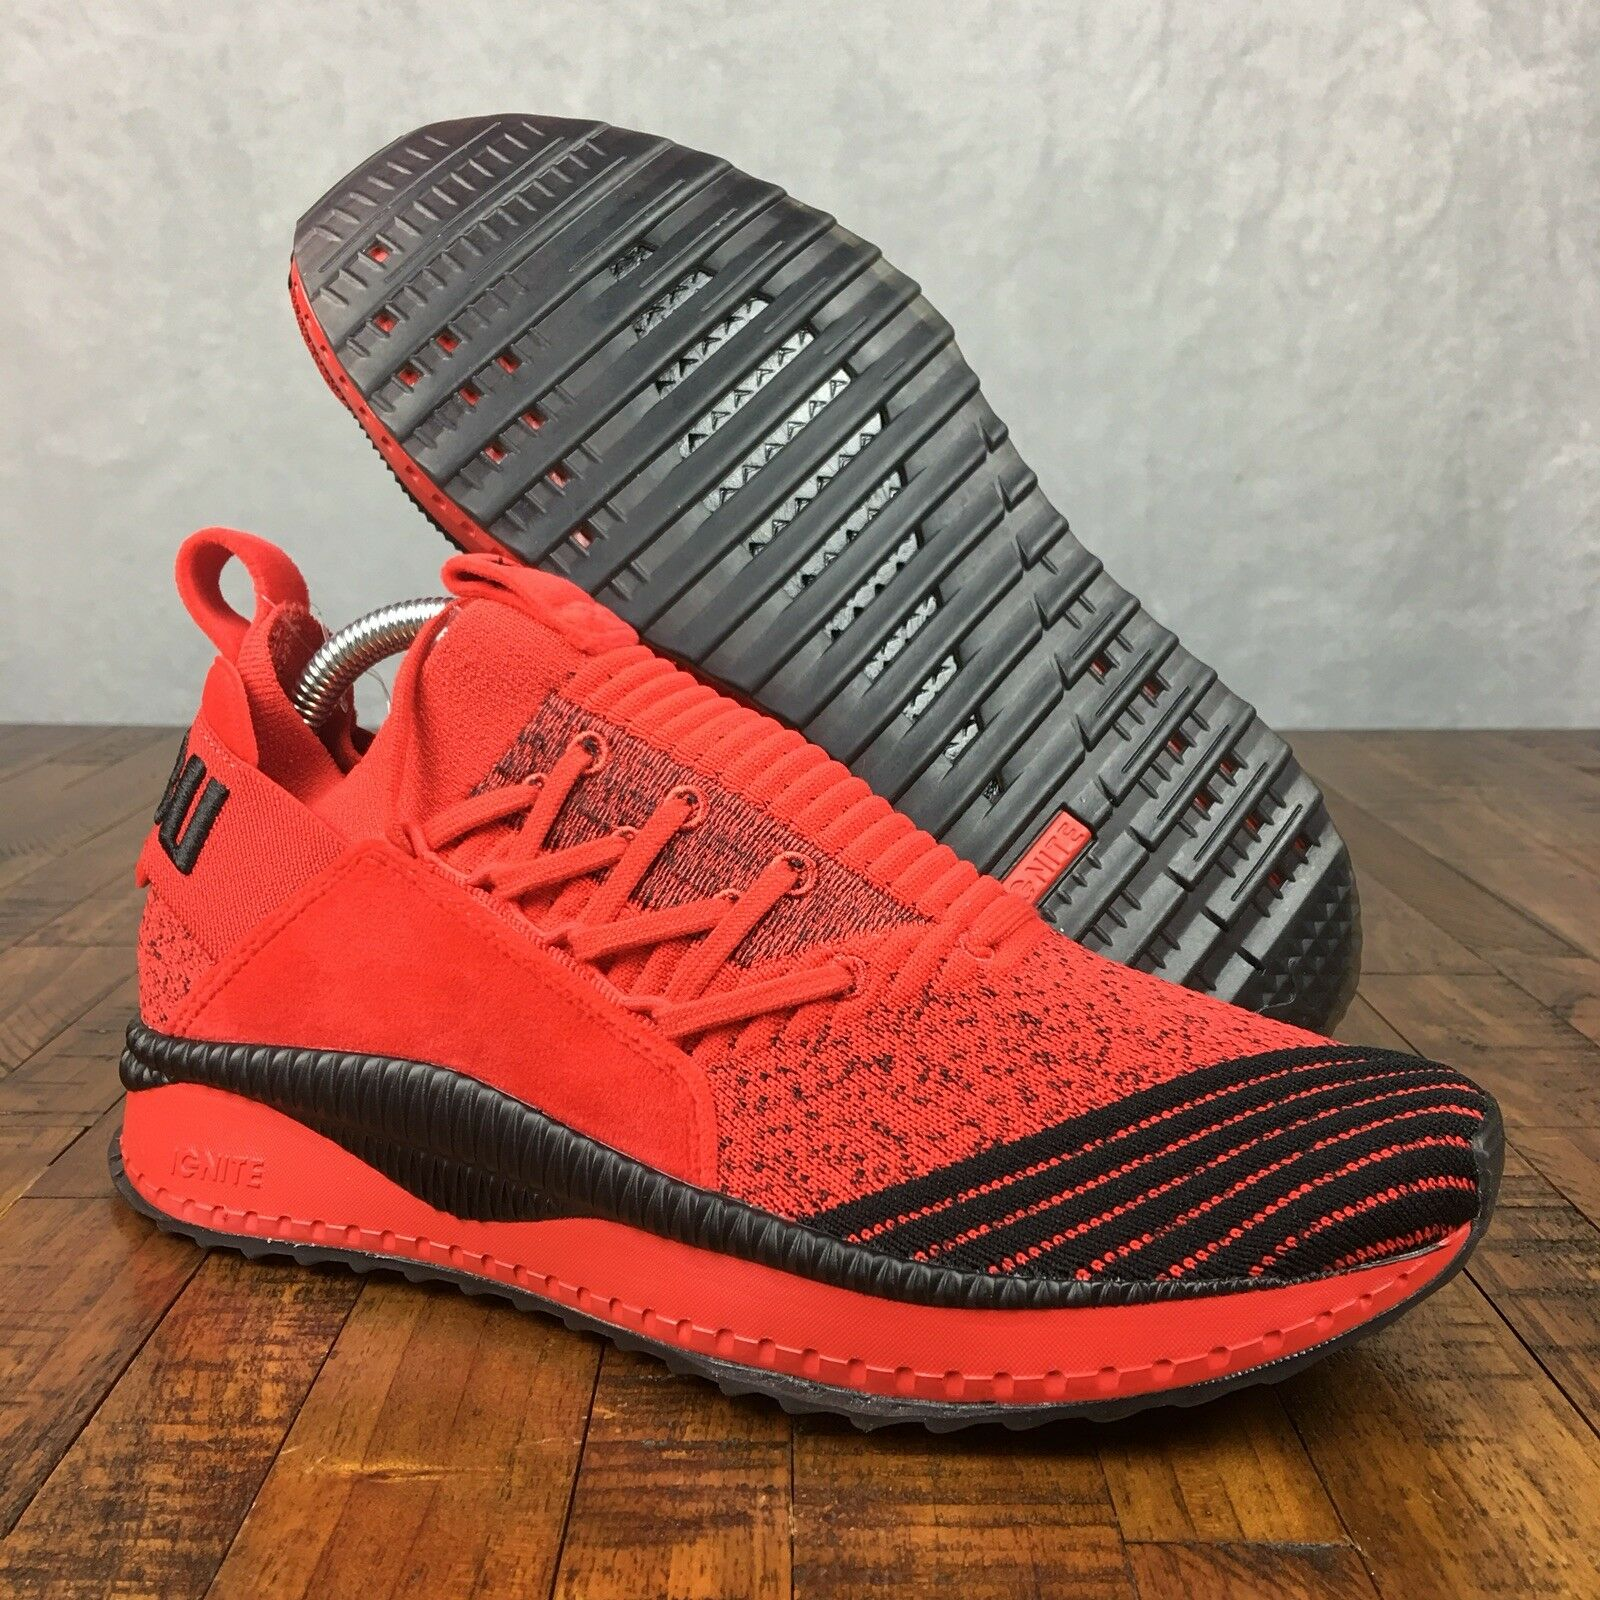 PUMA x FUBU Tsugi Jun shoes Sneakers High Risk Red Black 36744001 Mens Size 9.5